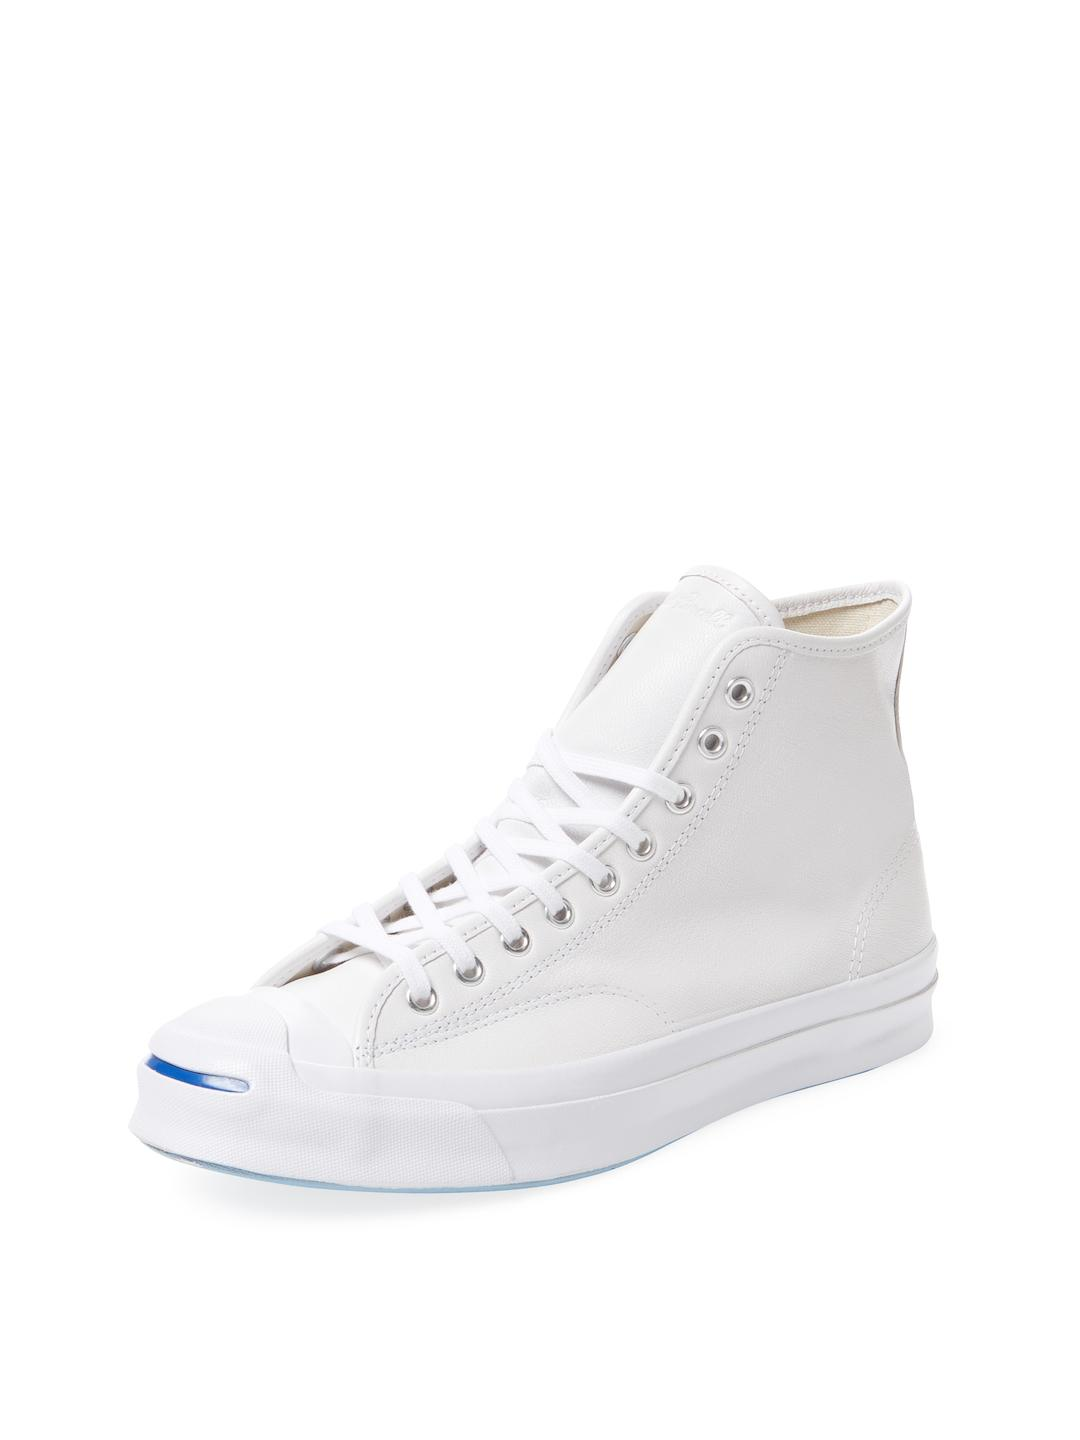 5e3f86fe574464 Lyst - Converse Jack Purcell Signature High Top Sneaker in White